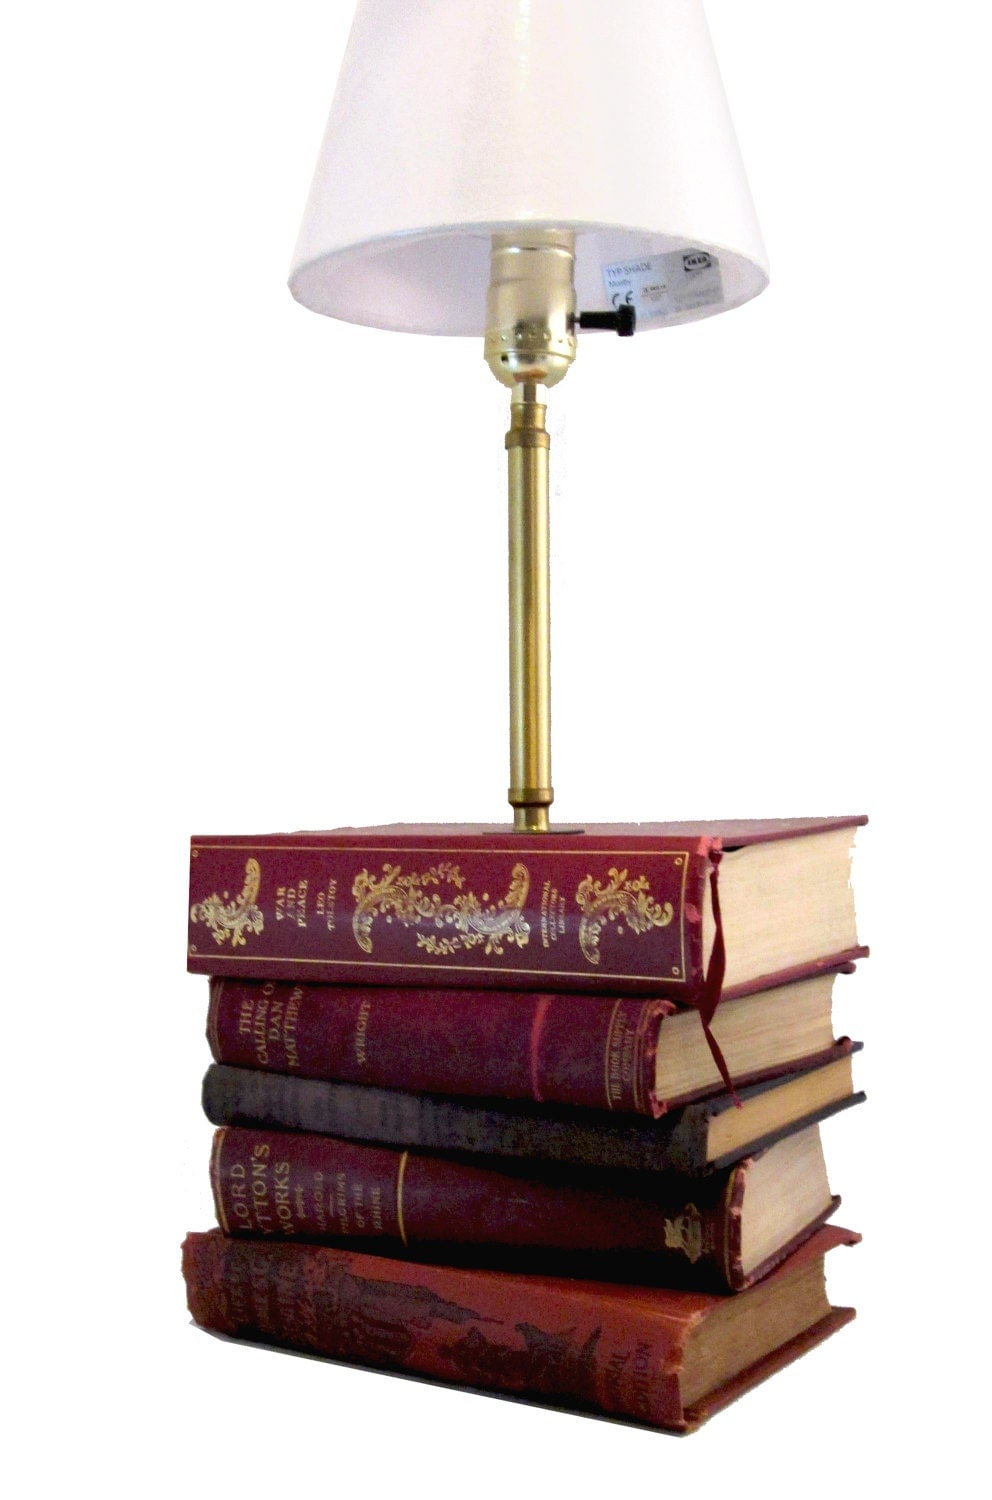 Uncategorized Book Decor book lover gift table lamp bookish decor book